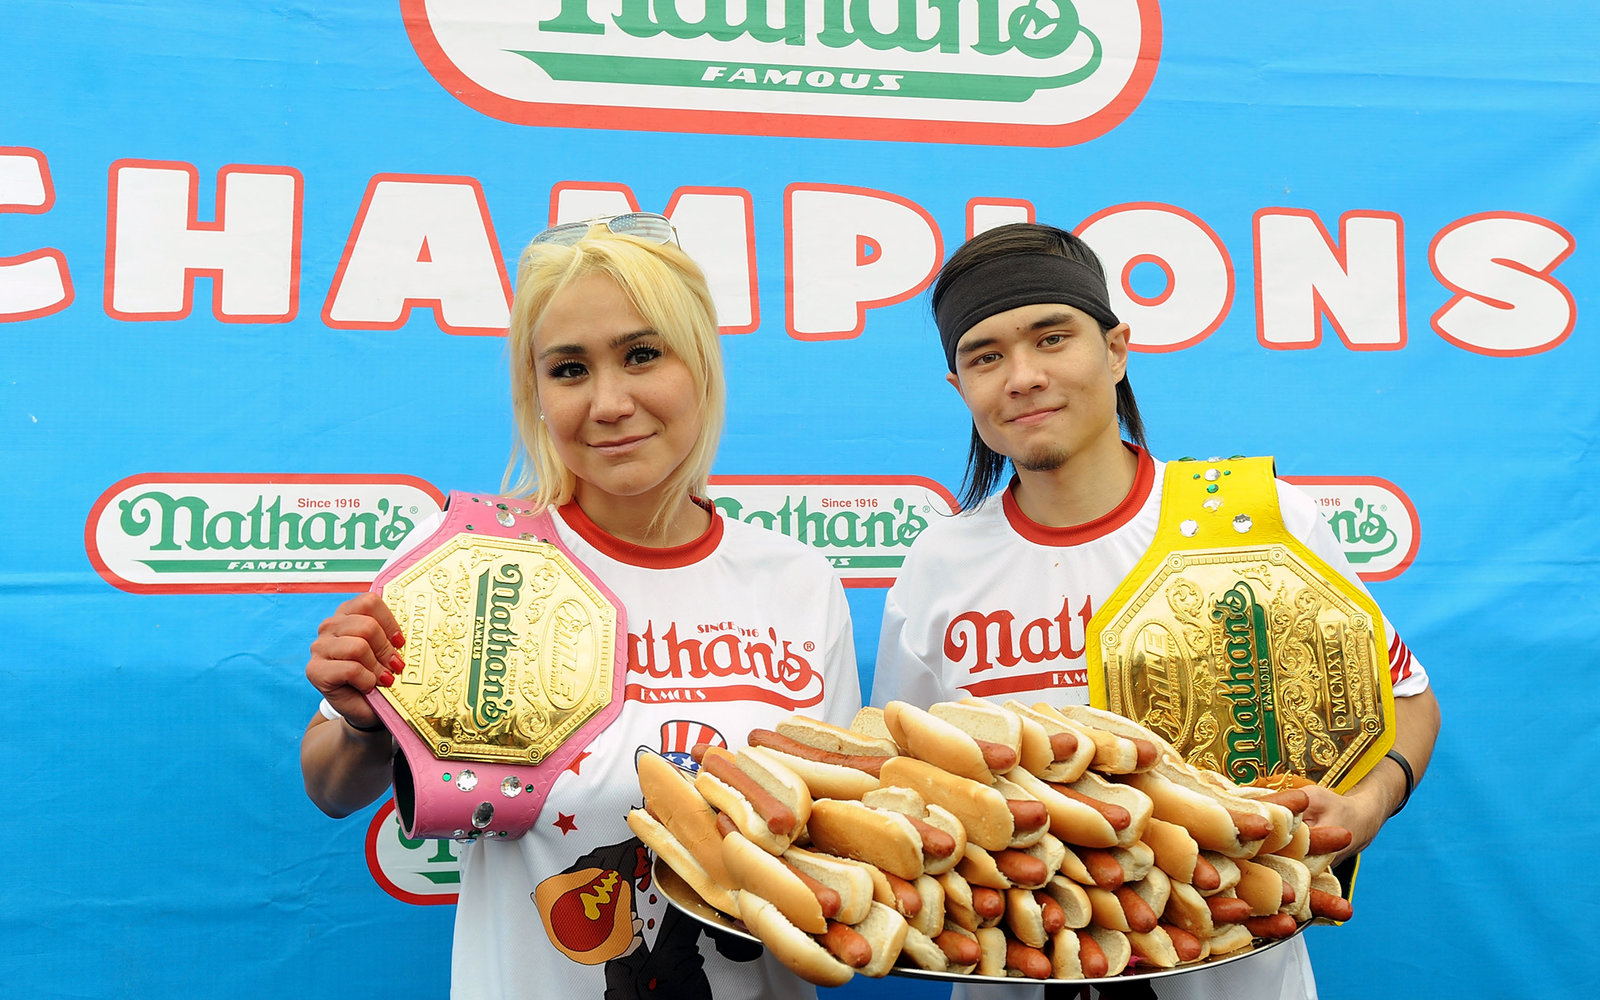 Hot Dog Eating Contest Record Holder